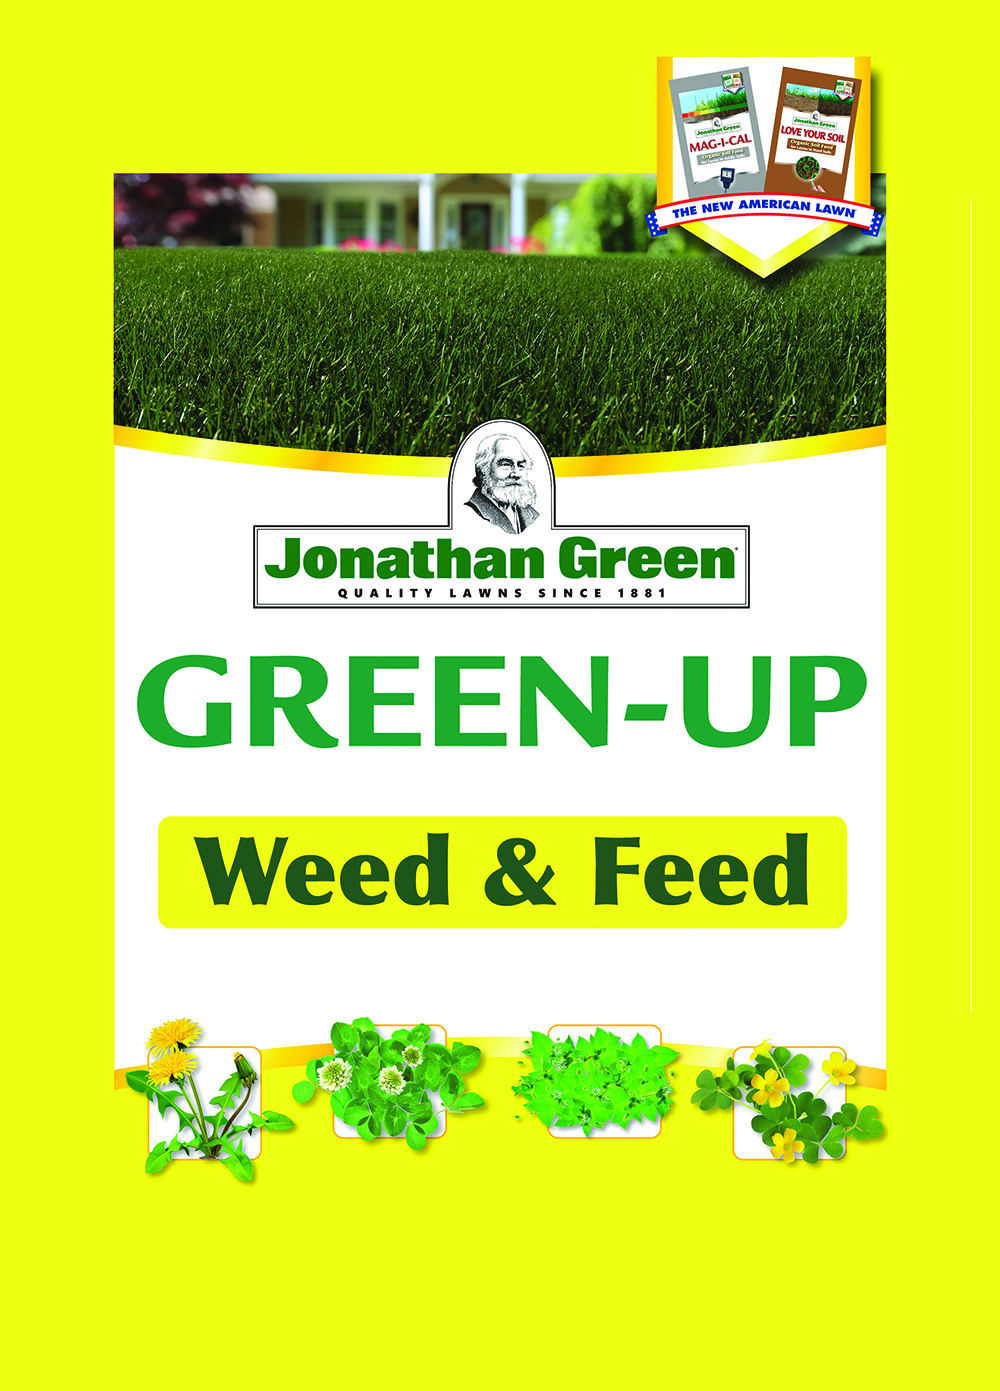 Taste Of The Wild Puppy Food >> Jonathan Green Green-Up Weed & Feed 5,000 Sq Ft